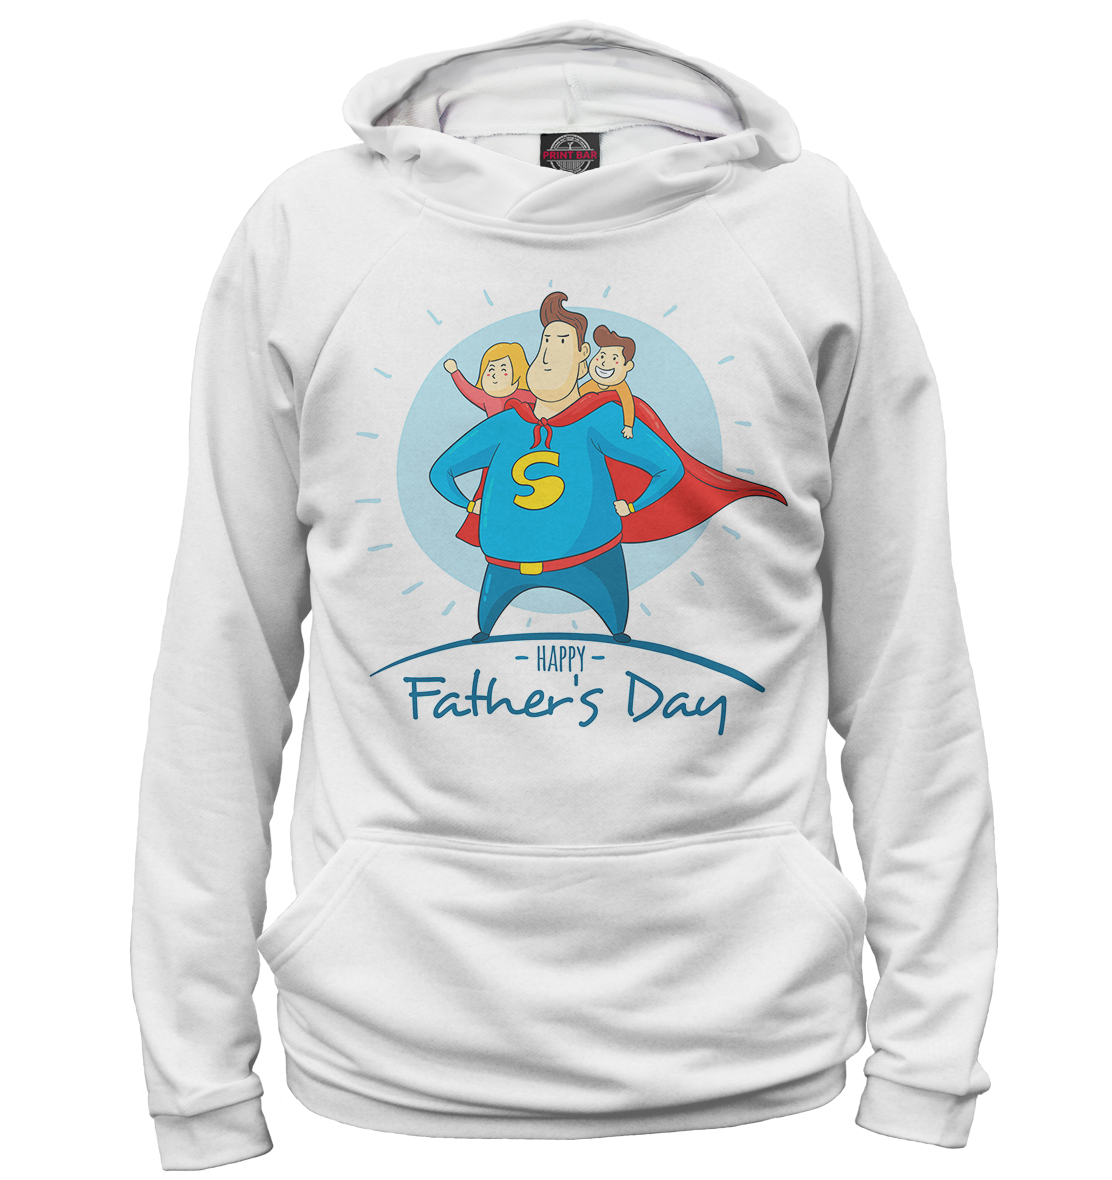 Фото - Father's Day day 2 day care шампунь